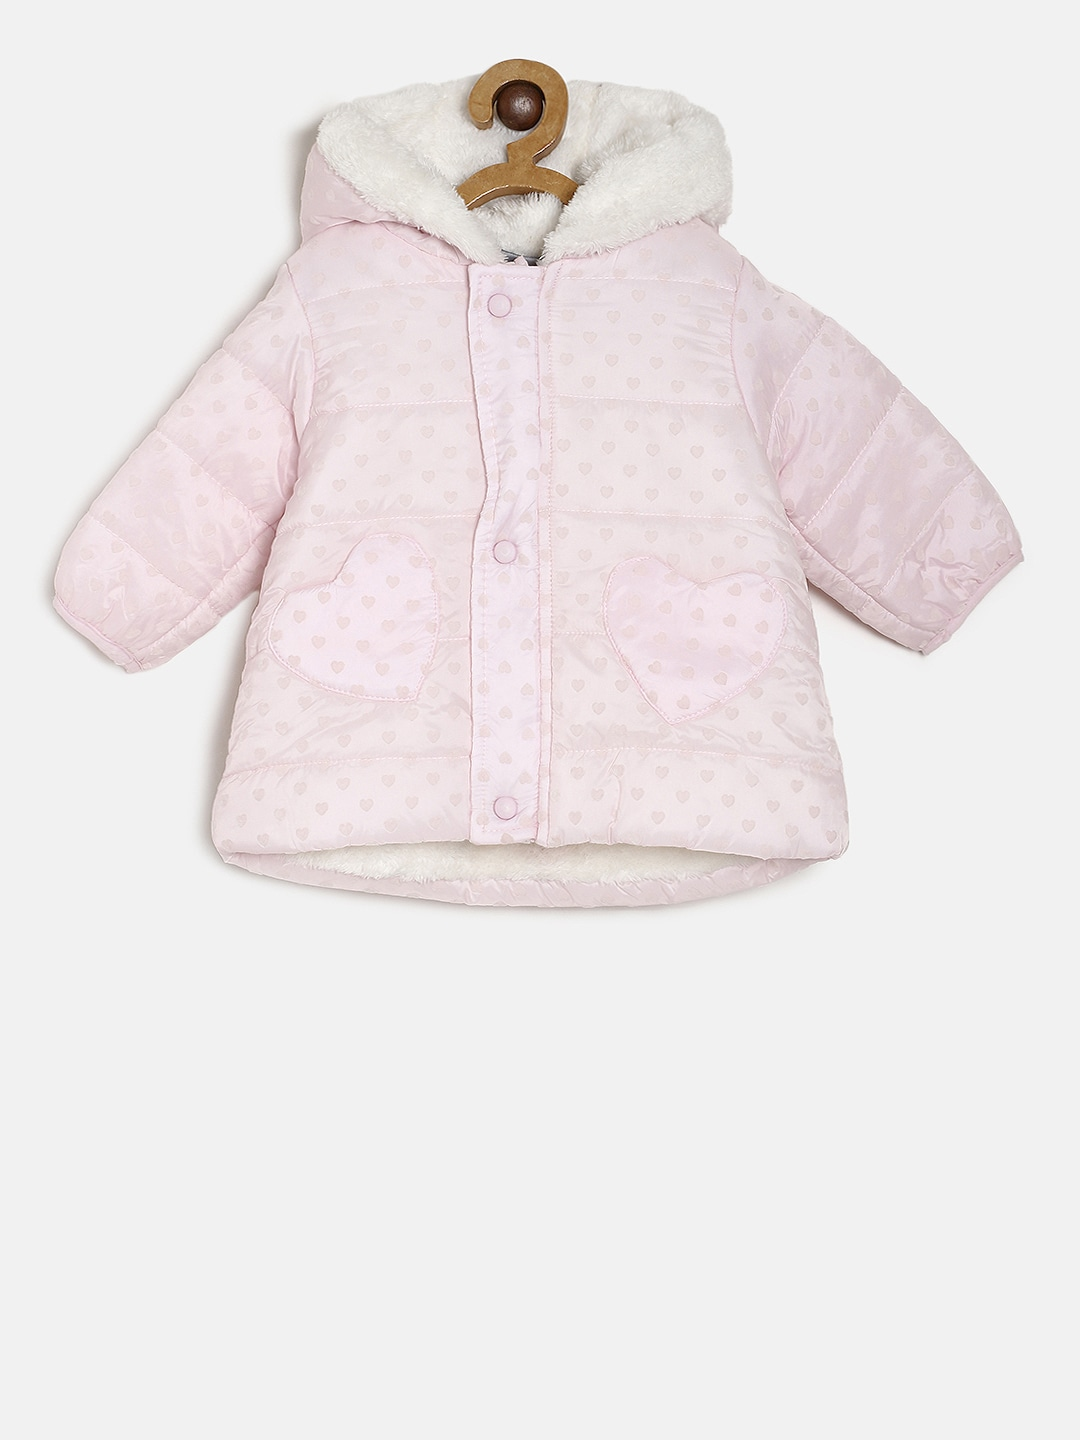 920c8d6d6885 Jackets for Girls - Buy Jacket for Girls online in India